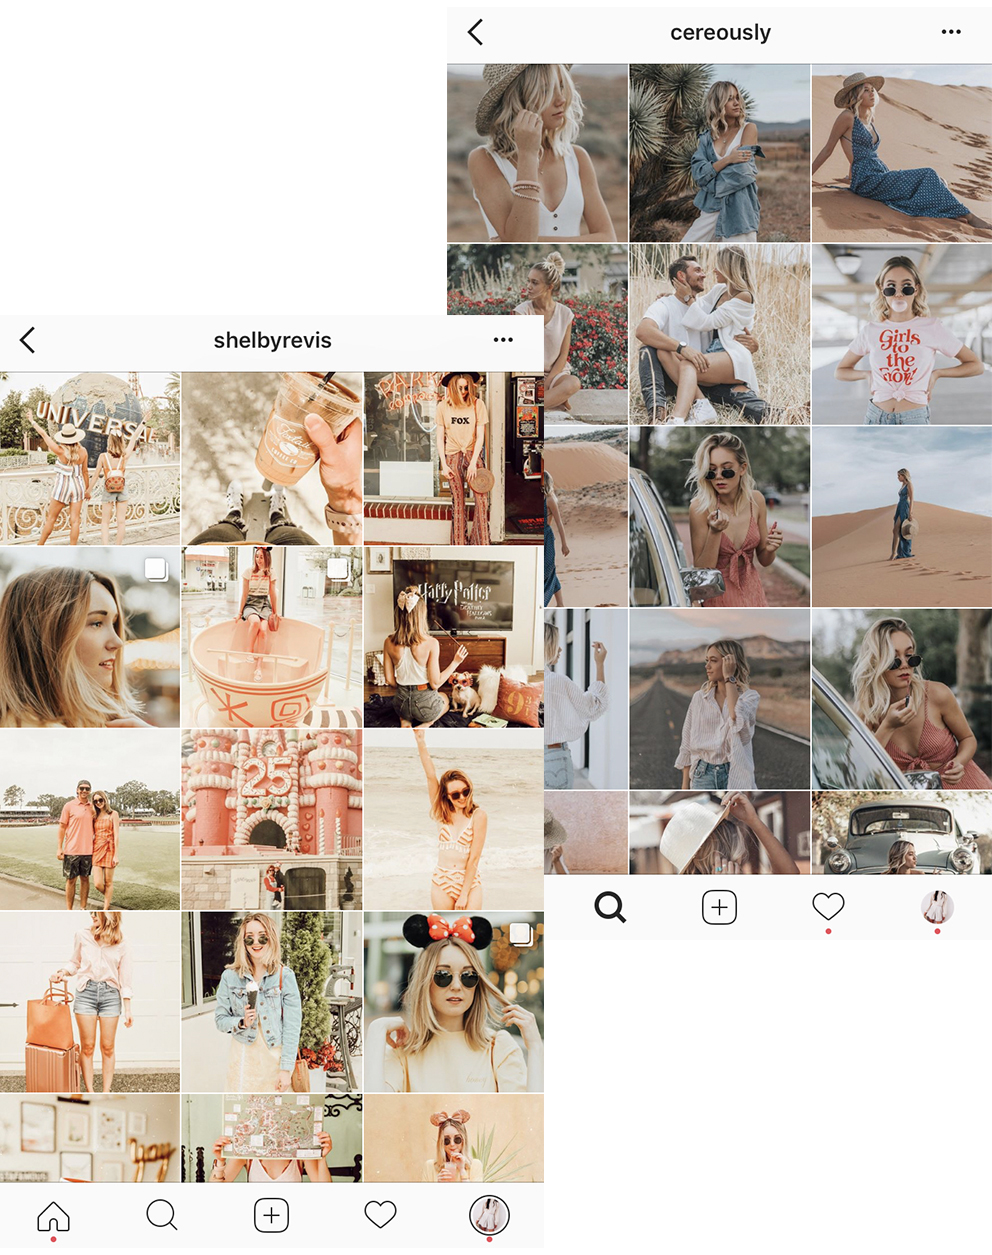 2/ Use the same filter on all your posts - Edit all your posts with the same filter to keep them cohesive. Apps like VSCO and Lightroom have options to copy and paste the same filter onto new photos so you don't need to start from scratch each time.